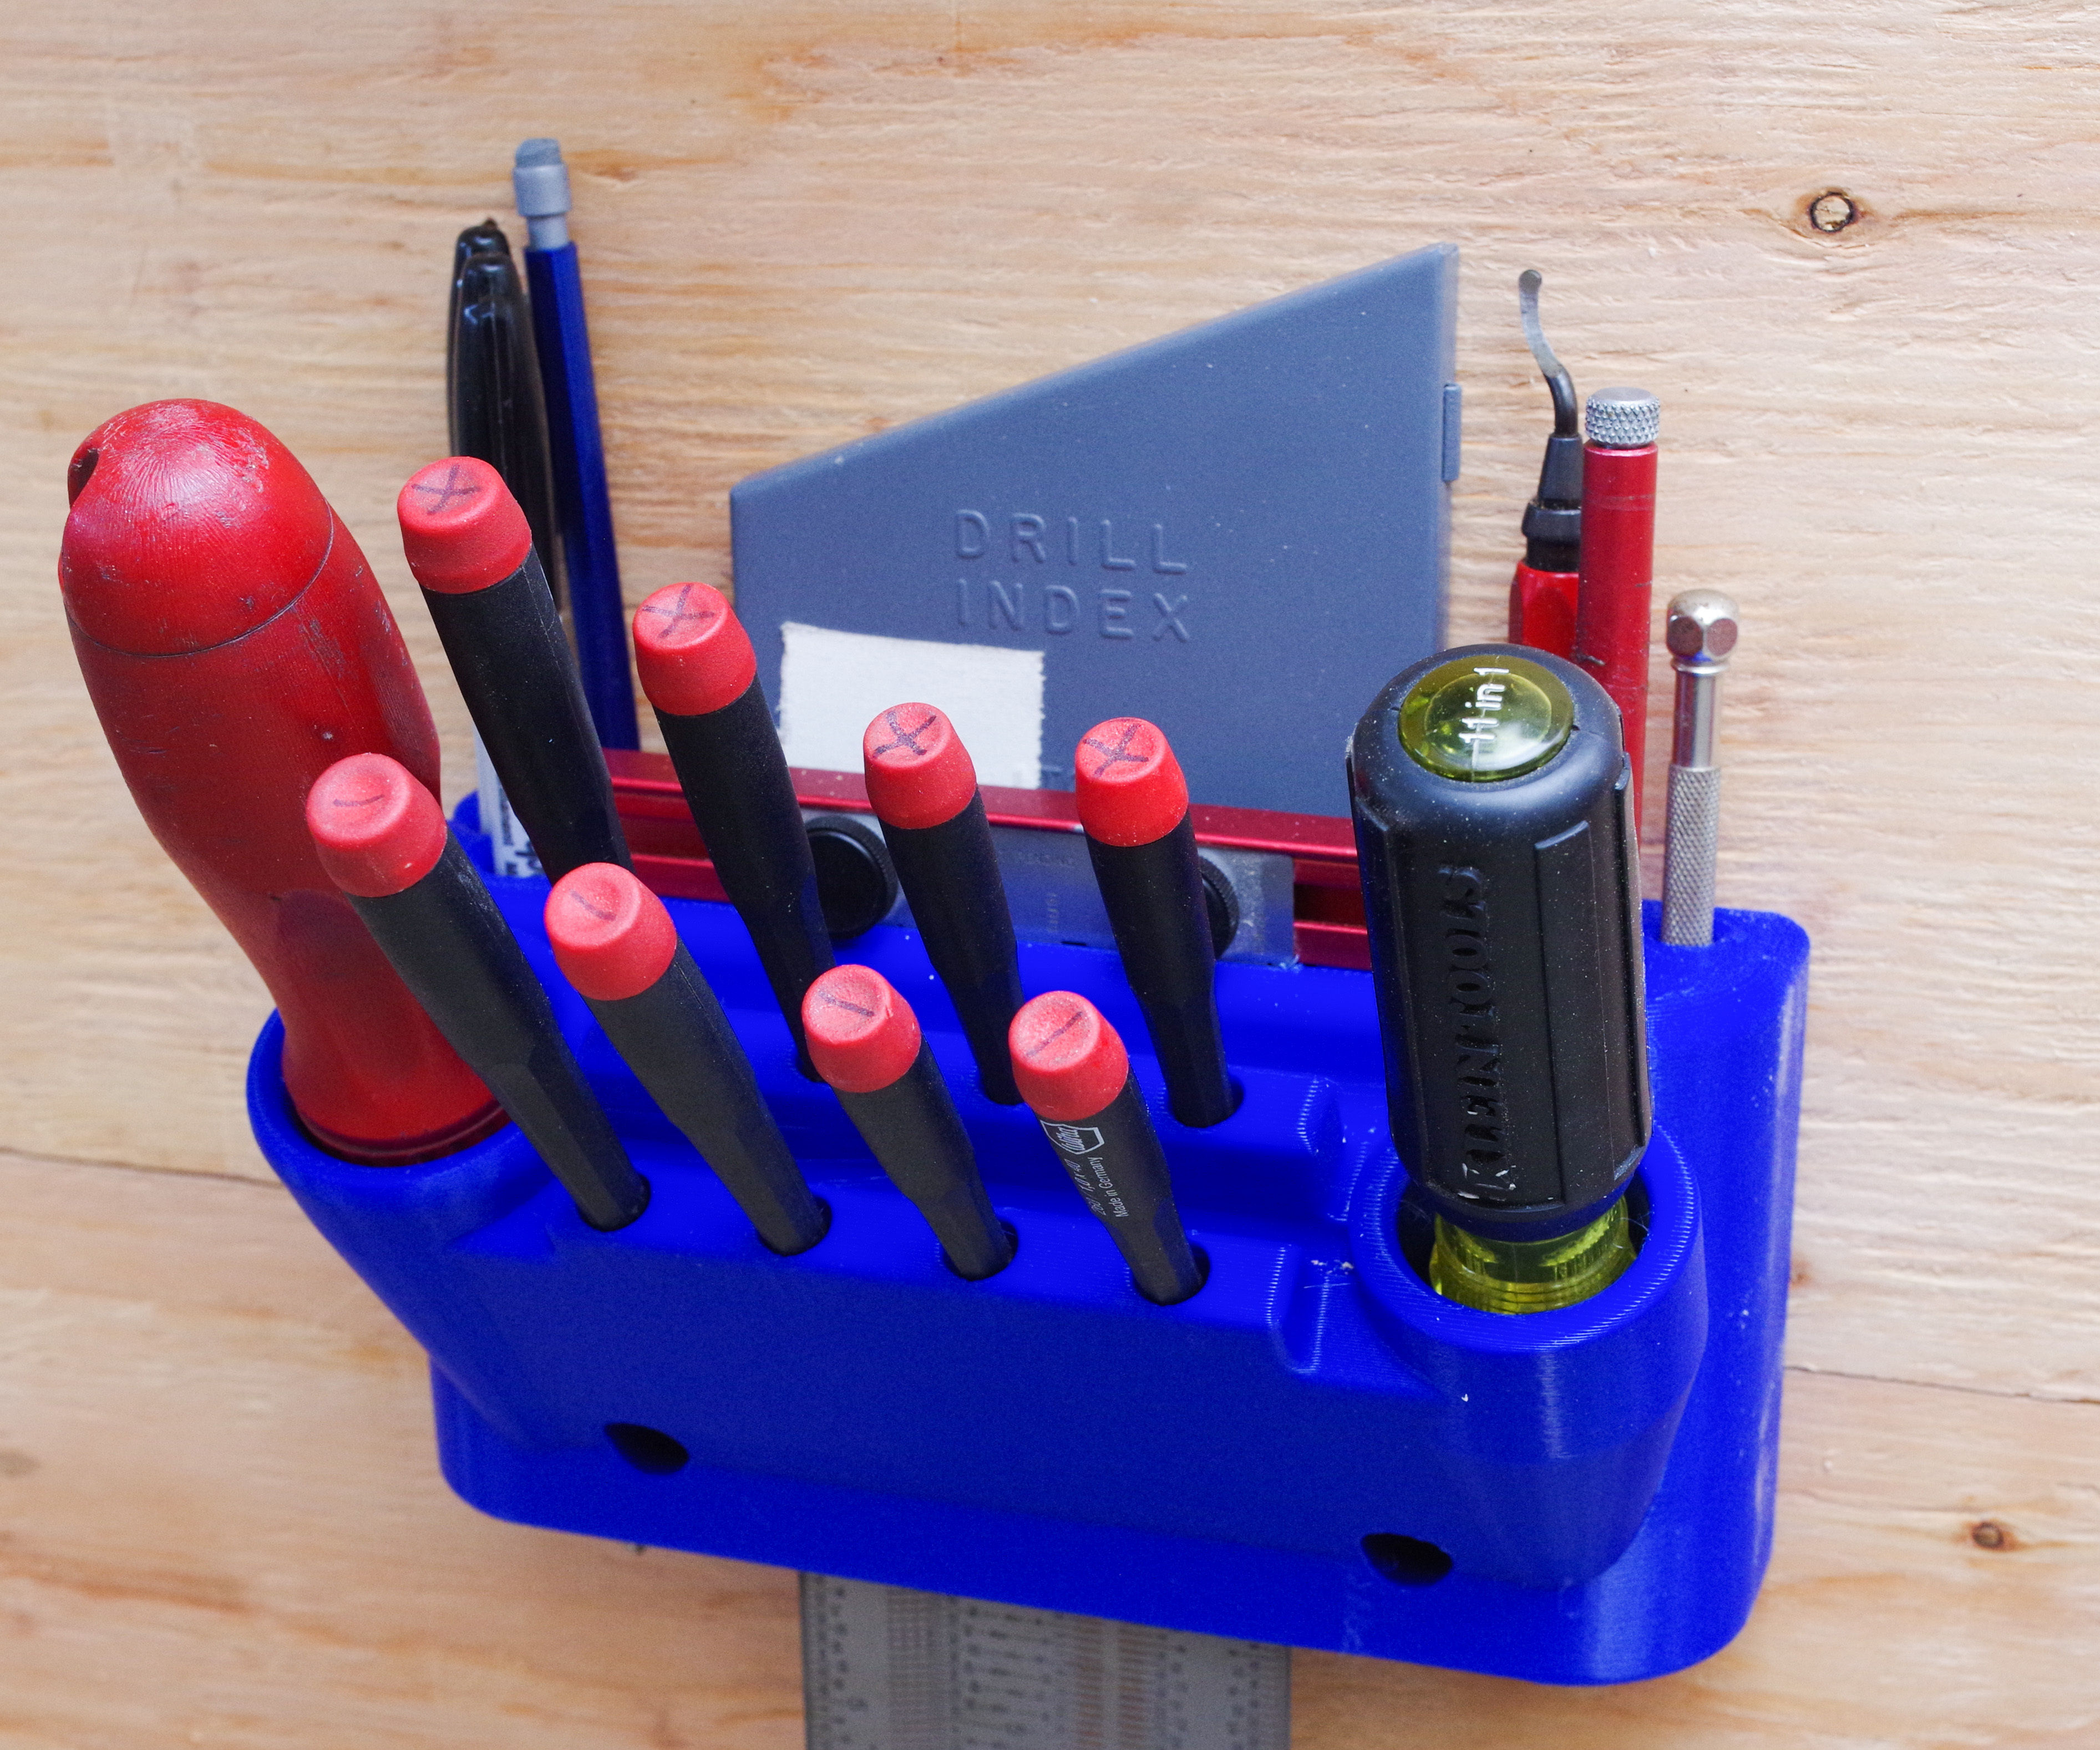 3D Printed Screwdriver, Drill Pen and Ruler Holder